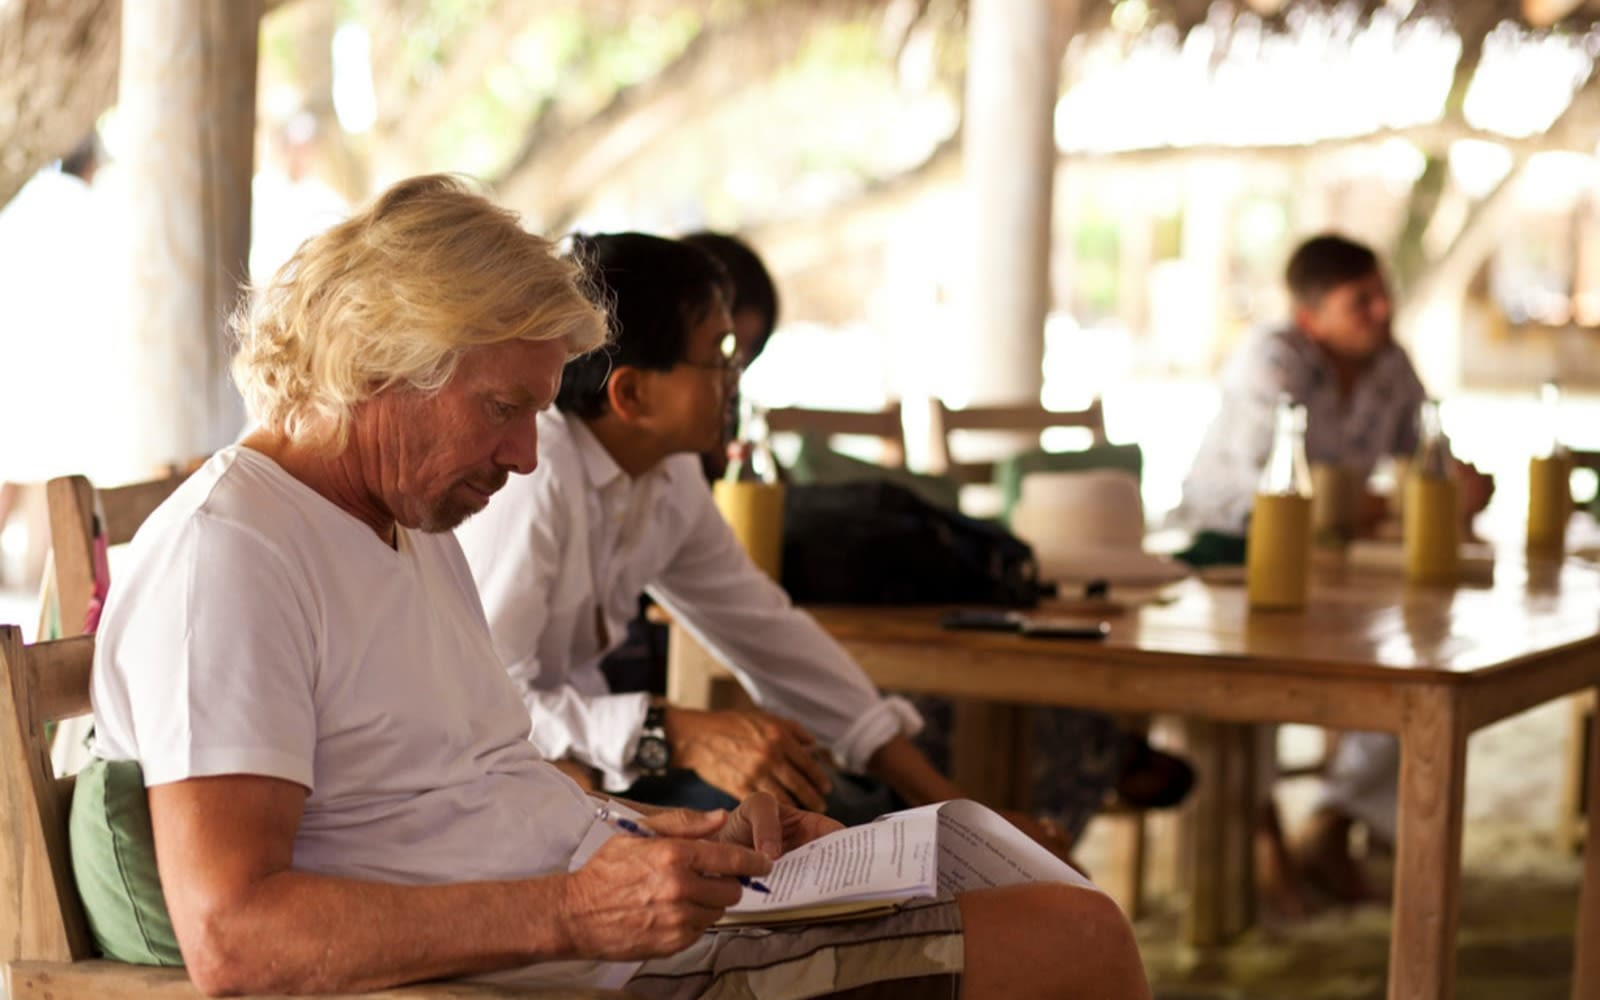 Richard Branson seated reading